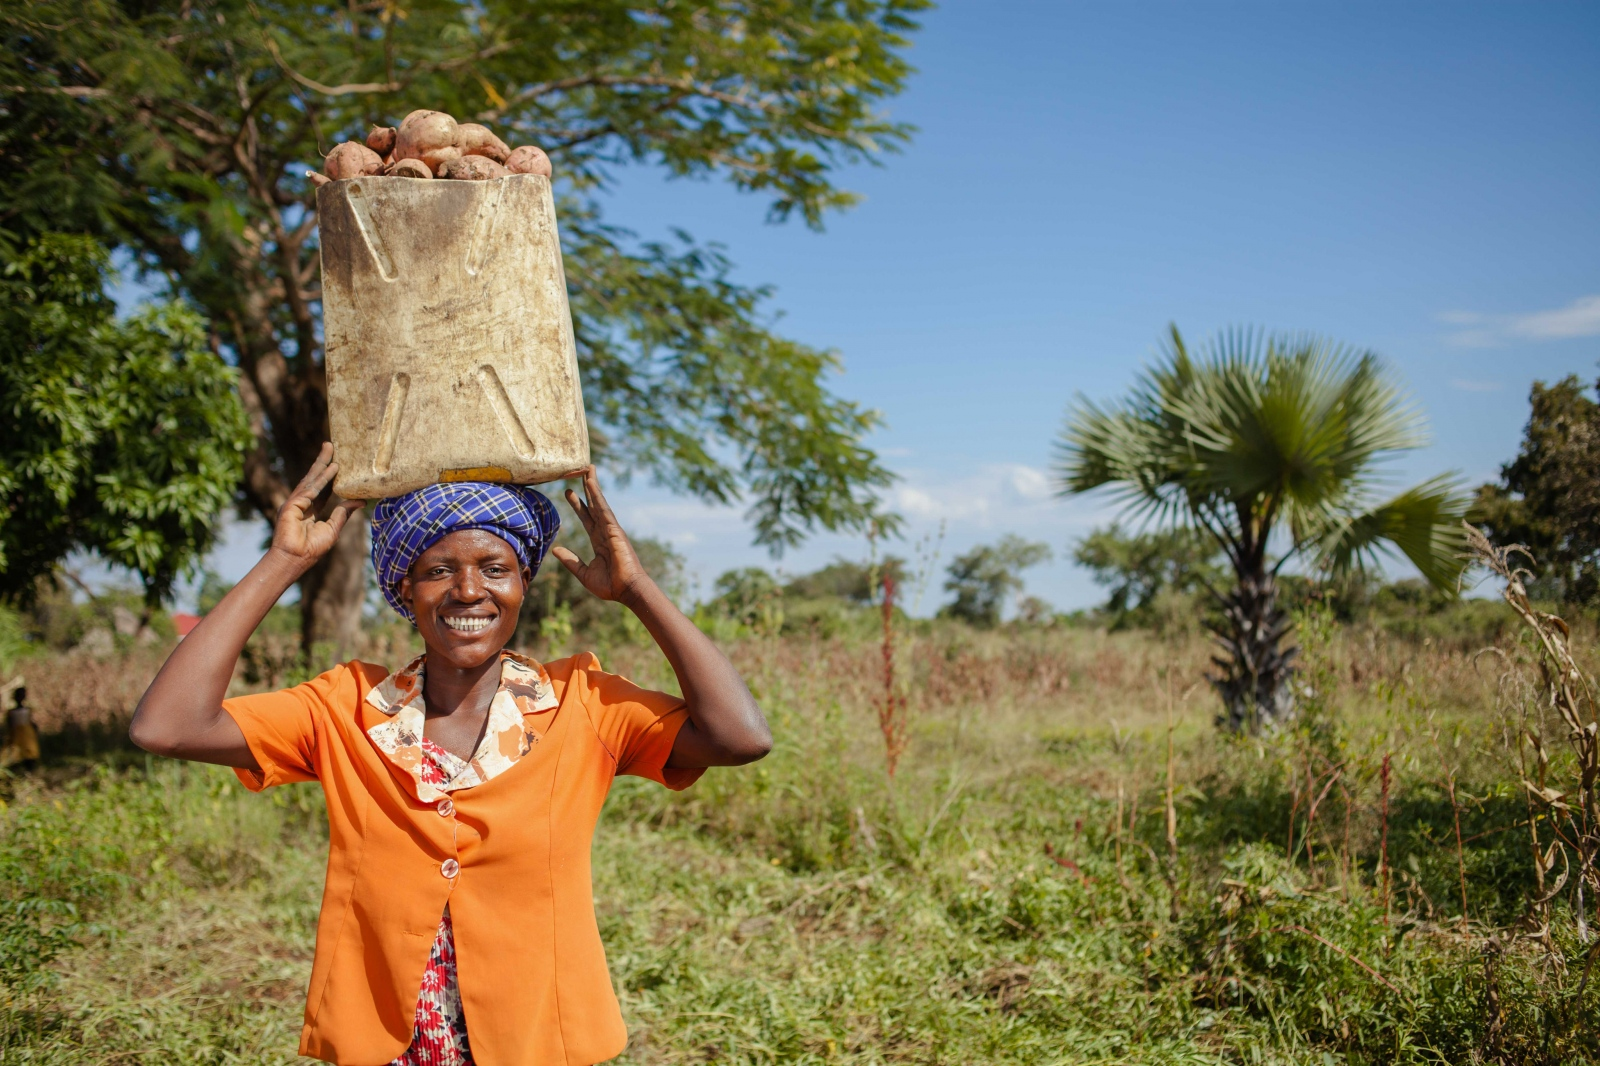 Kokoi poses for a portrait carrying harvested sweet potatoes from her garden in Soroti, Eastern Uganda. Farm Africa's Orange Sweet Potato Project is helping farmers like her produce, process and sell high-quality orange sweet potatoes so they can grow their incomes, improve their diets and build healthier, more prosperous futures for themselves and their communities. For Farm Africa